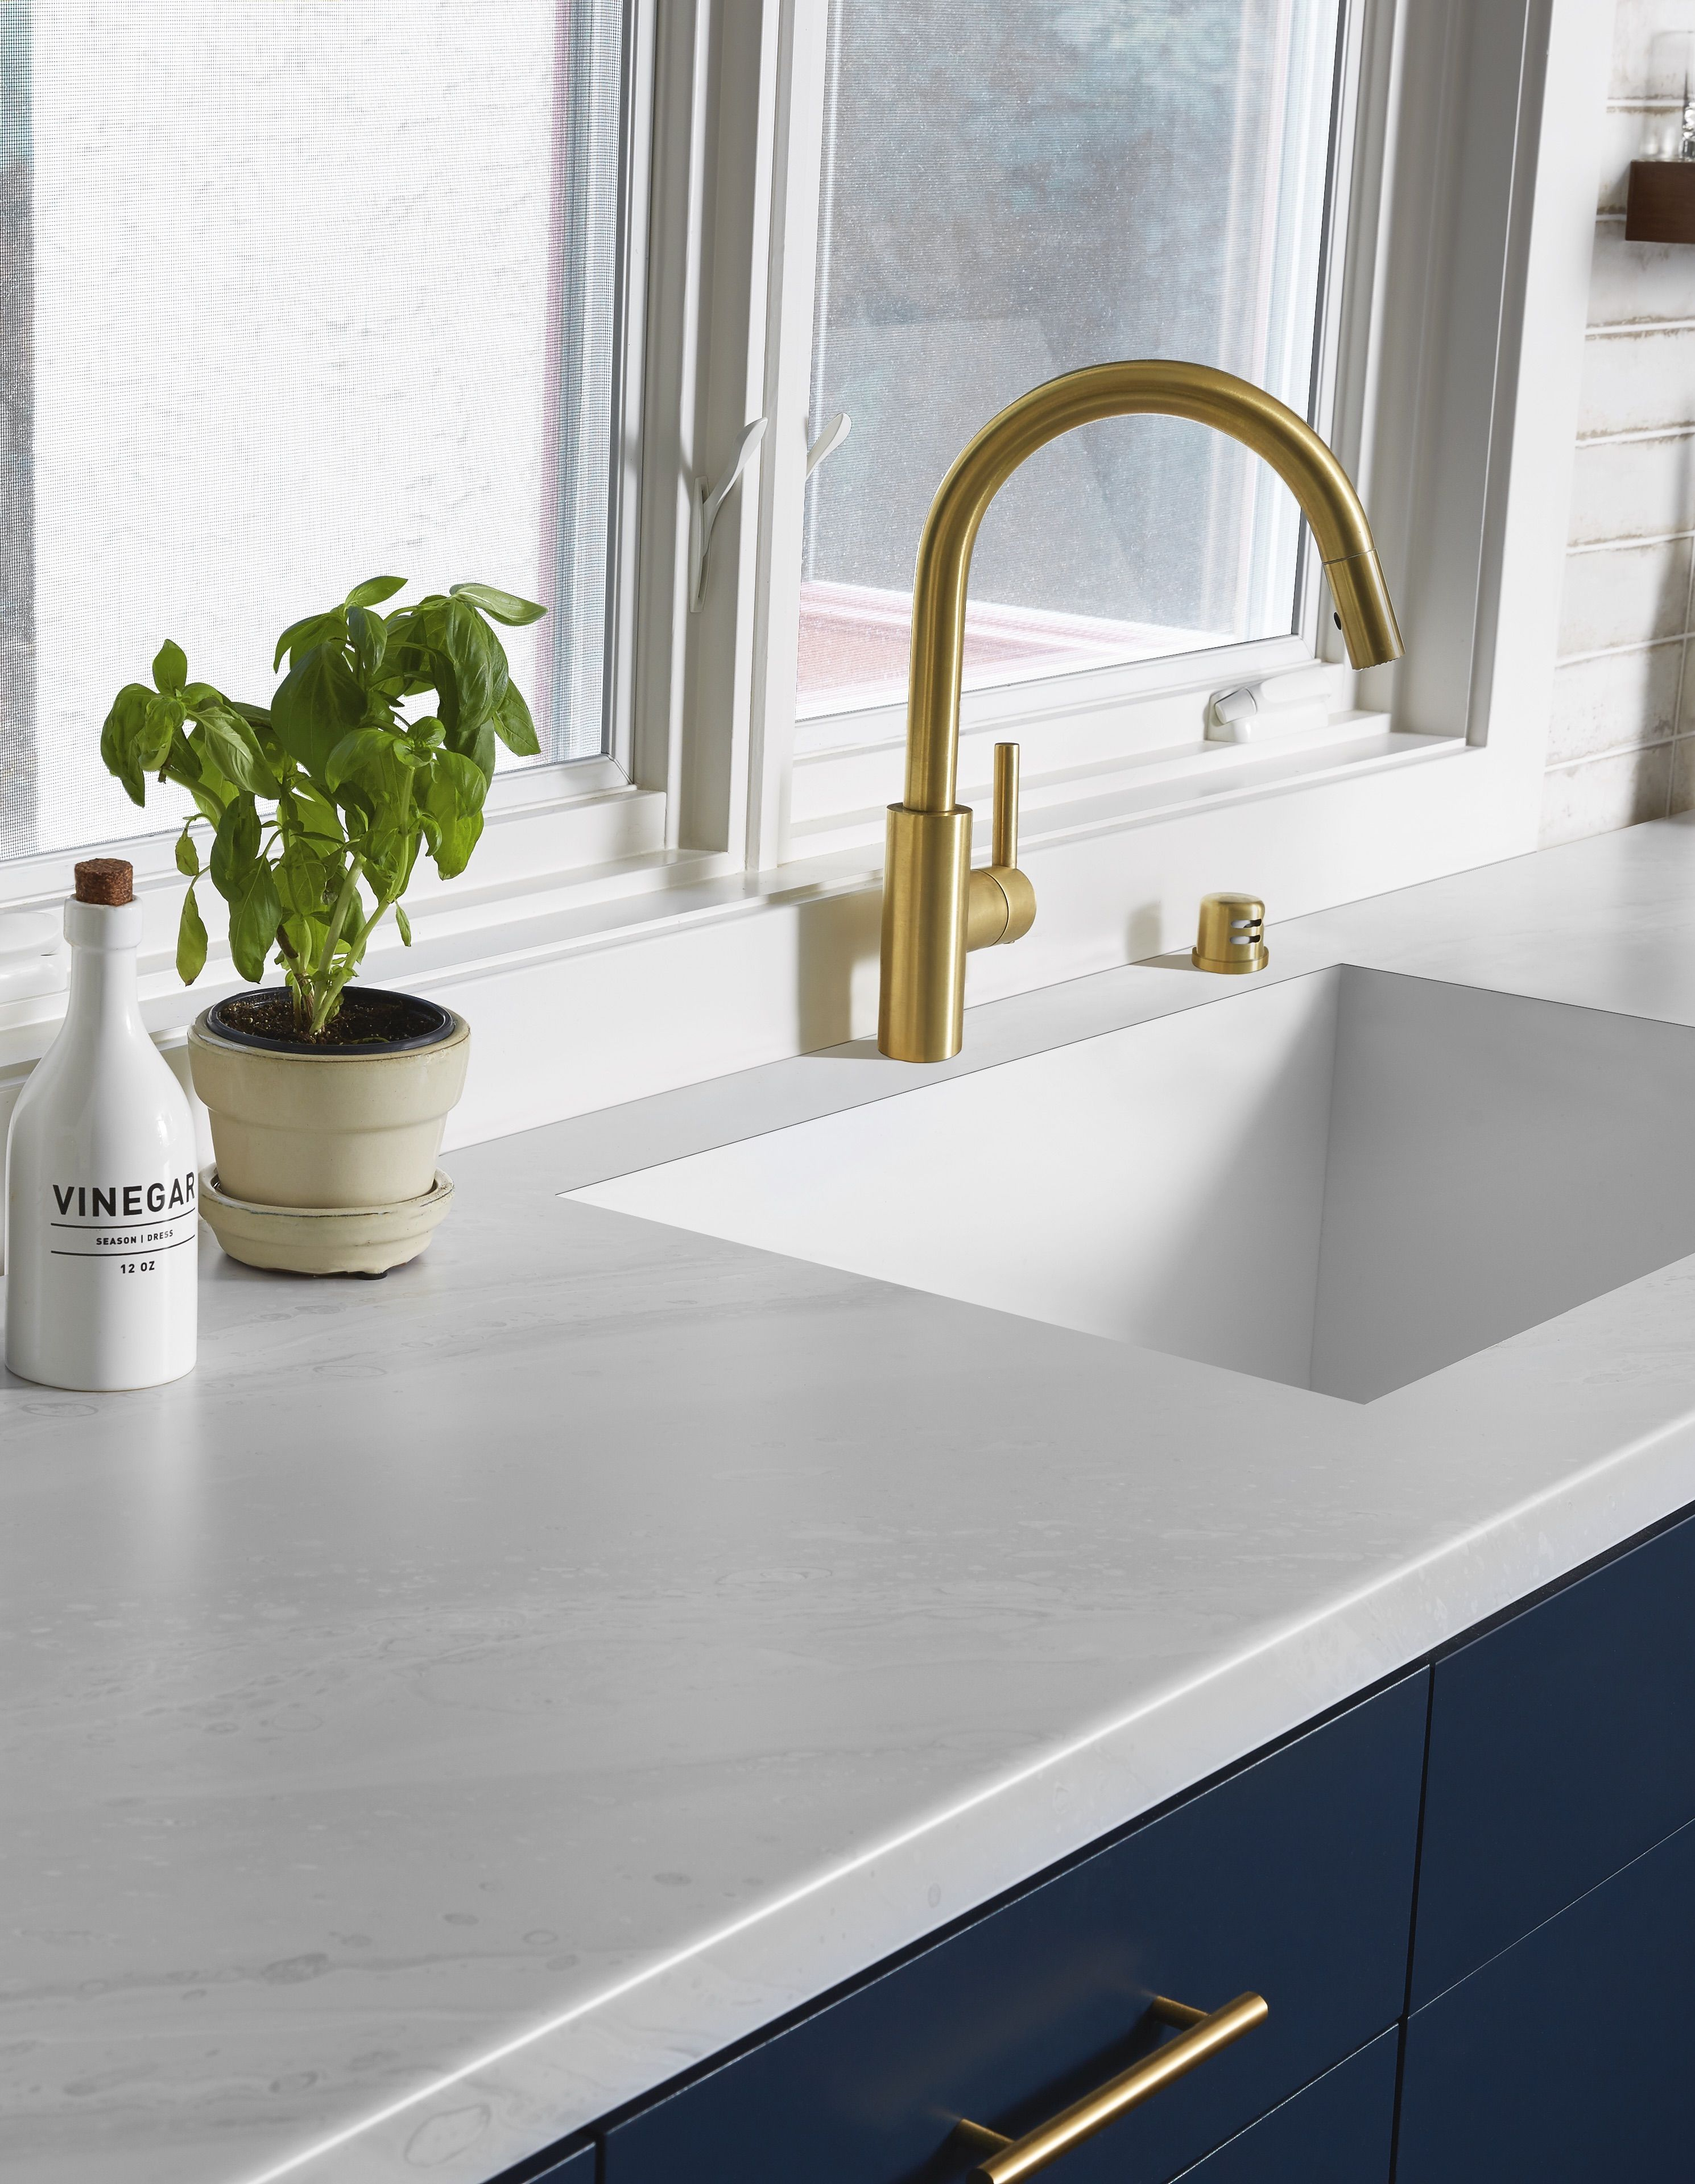 Formica S Marble Countertops Basically Look Just Like The Real Thing In 2020 Marble Countertops Formica Cheap Kitchen Decor